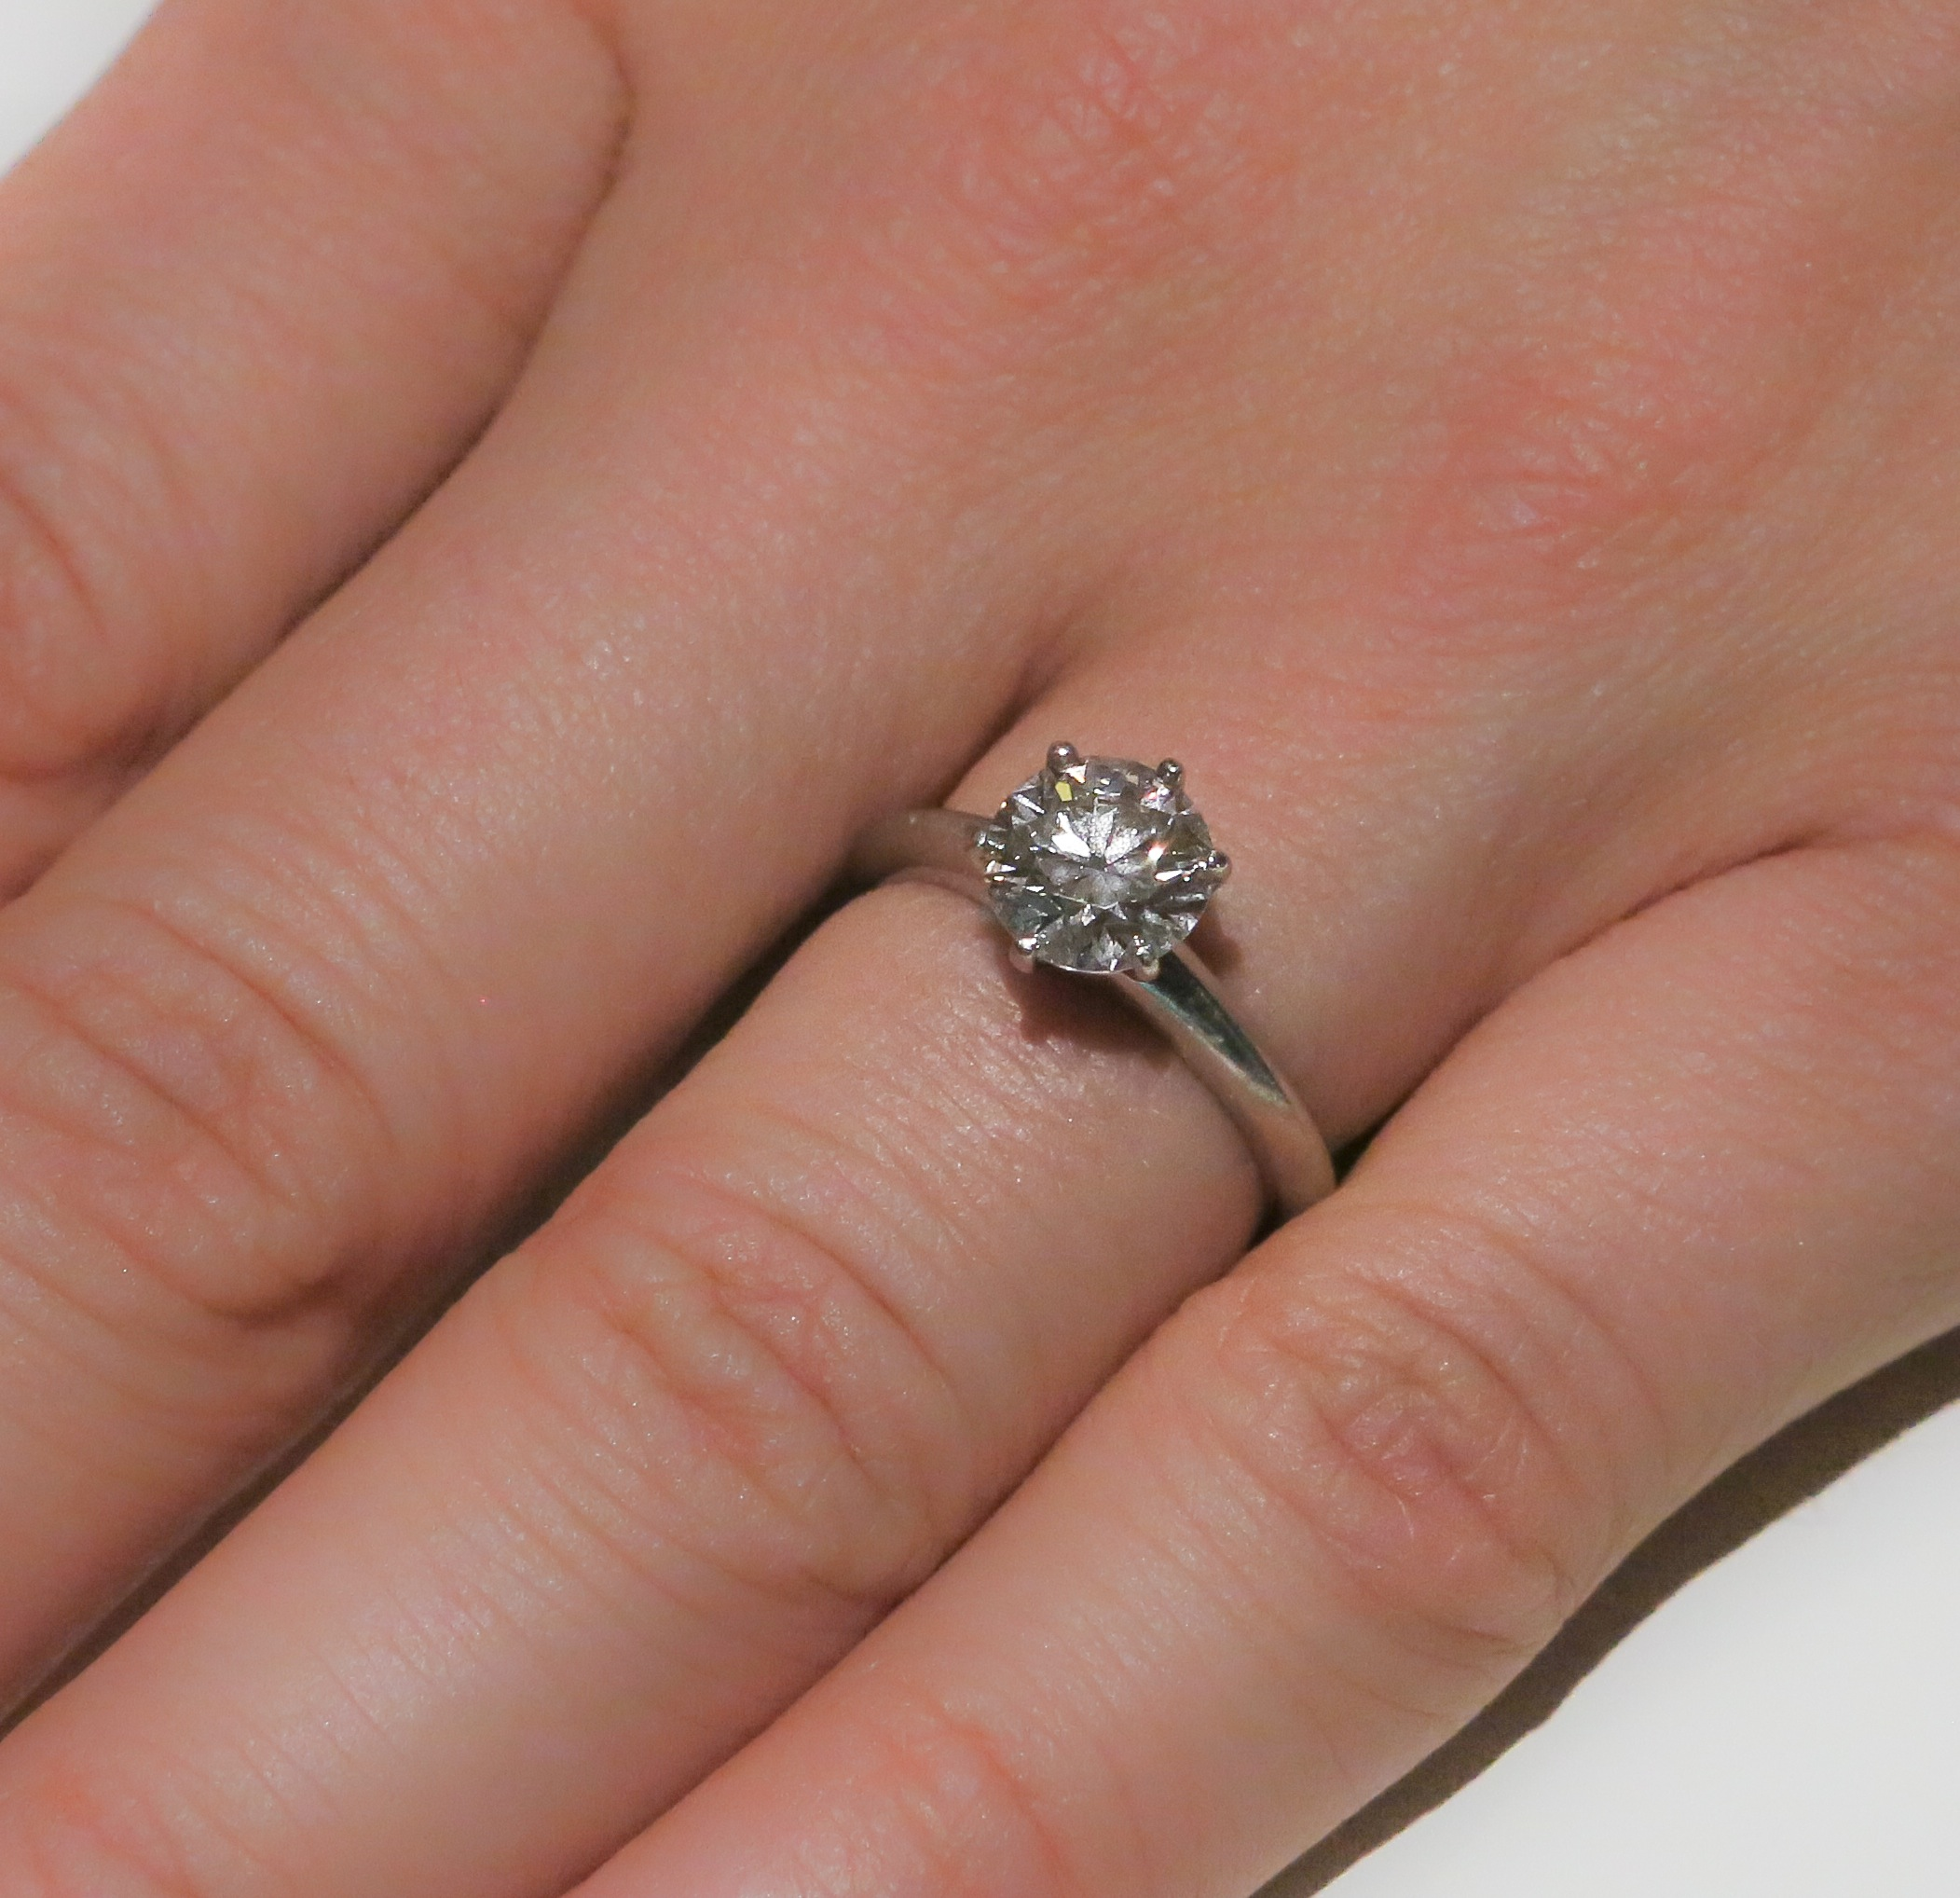 f93b0f0aa Tiffany & Co 1.55ct Classic Solitare Ring in Platinum. Tiffany appraisal is  $31,600.